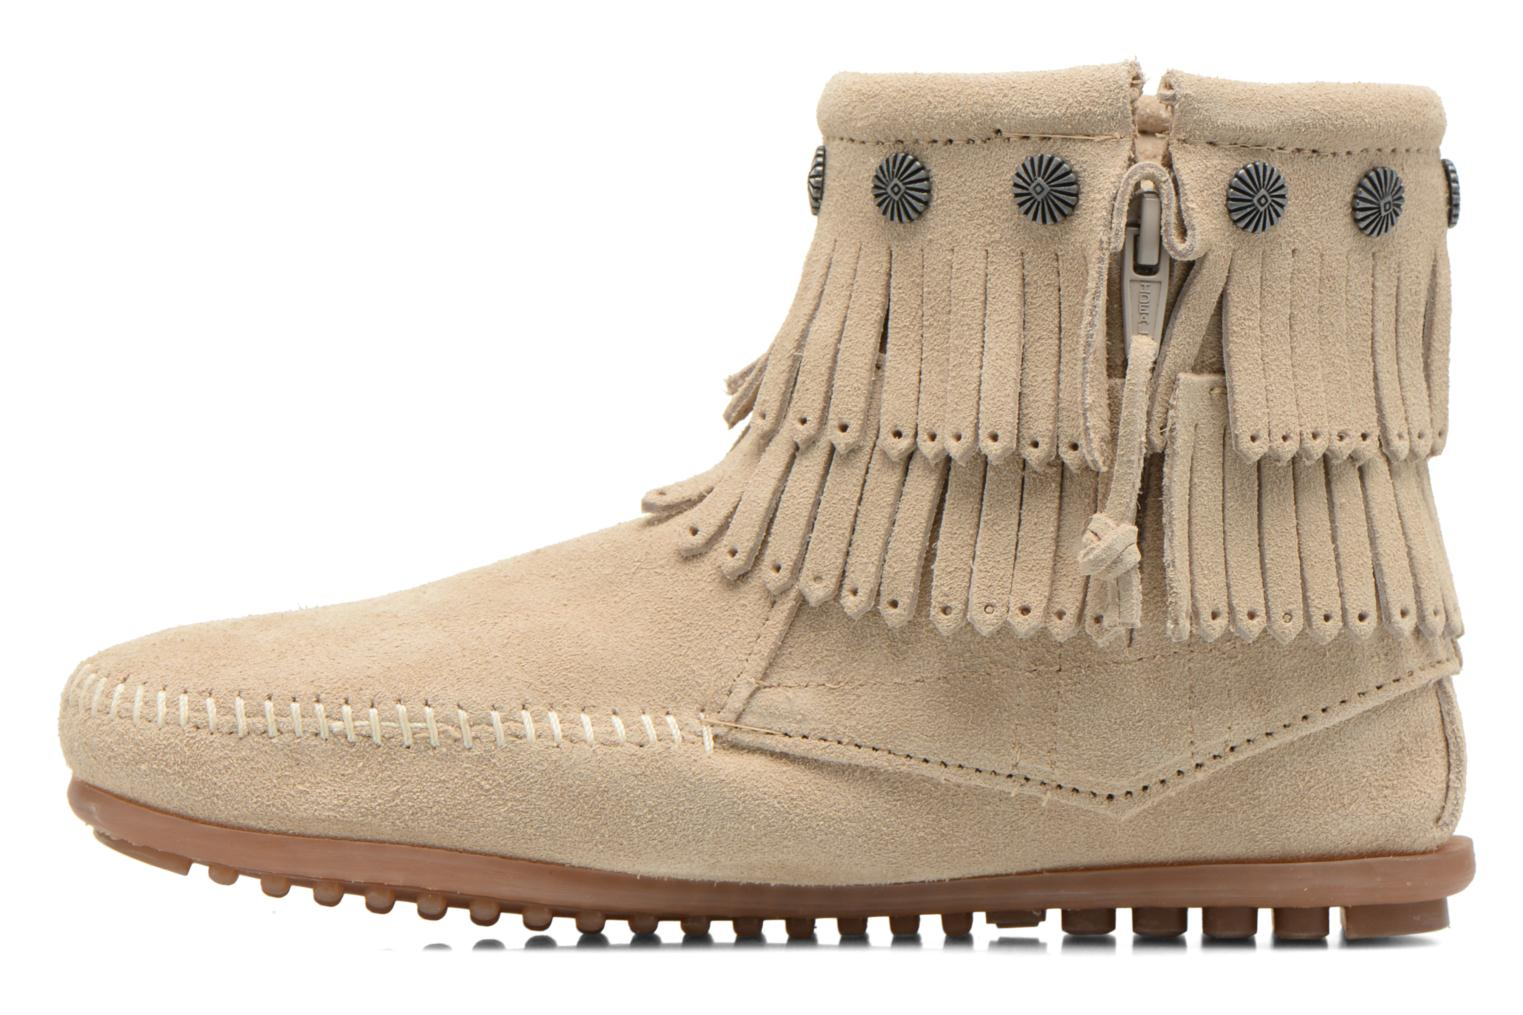 Bottines et boots Minnetonka DOUBLE FRINGE BT Beige vue face